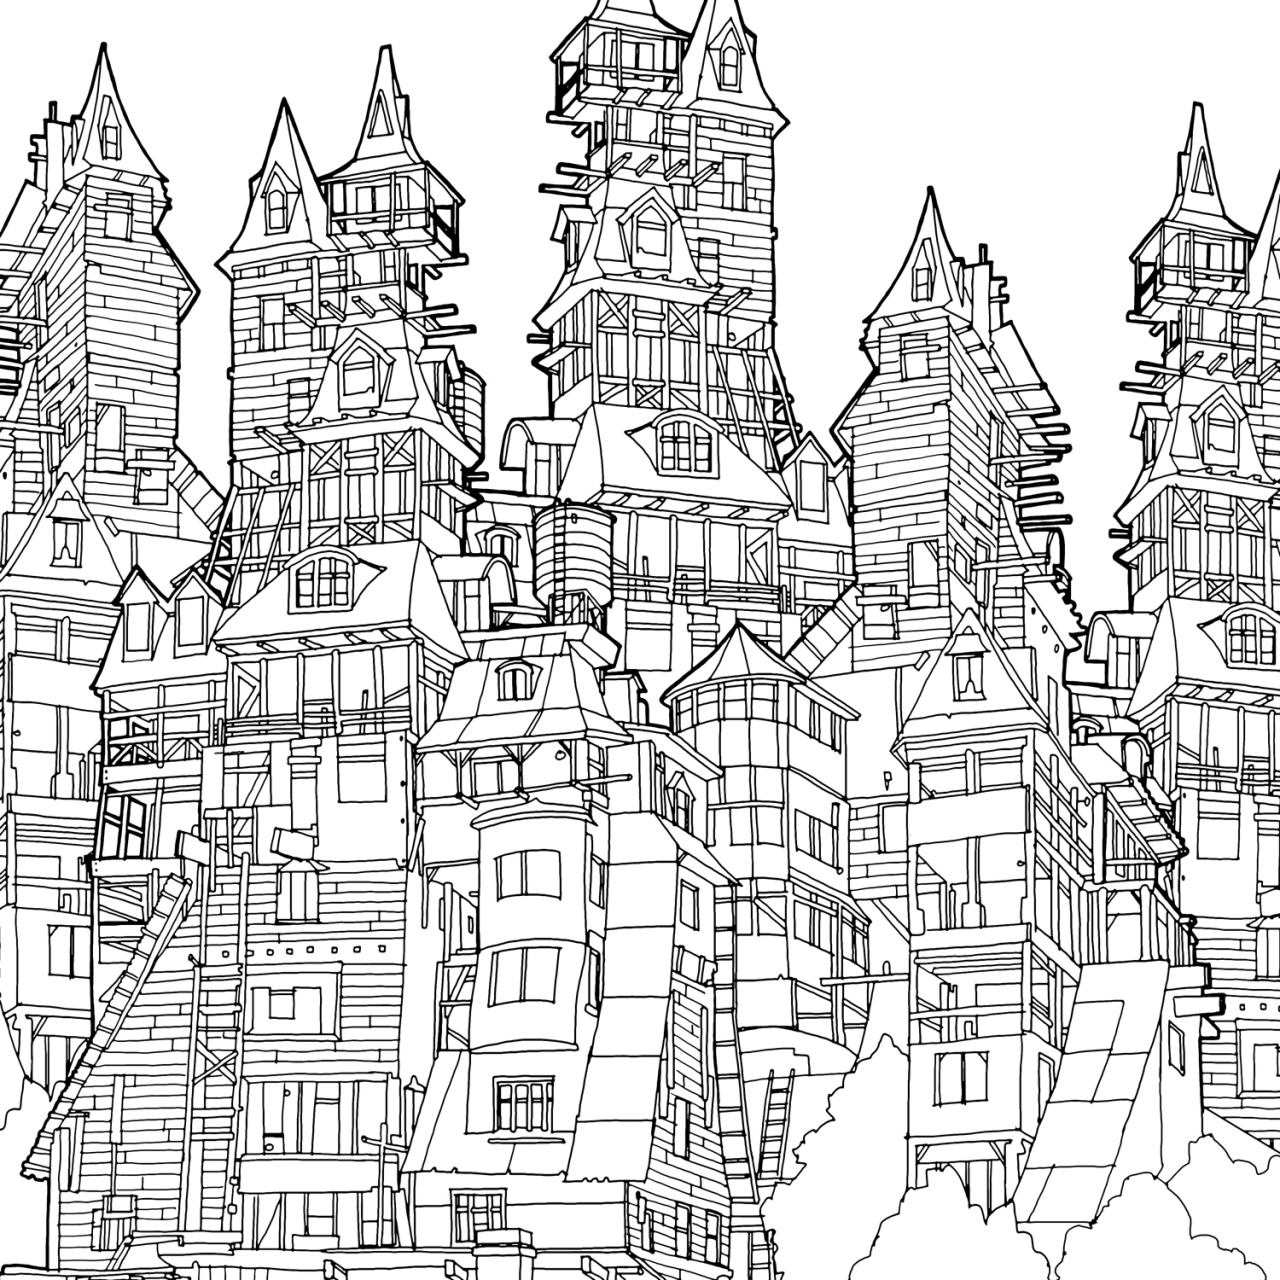 Coloring Pages Large Size Of Printable 1 1280x1280 Fantastic Cities Steve Mcdonald